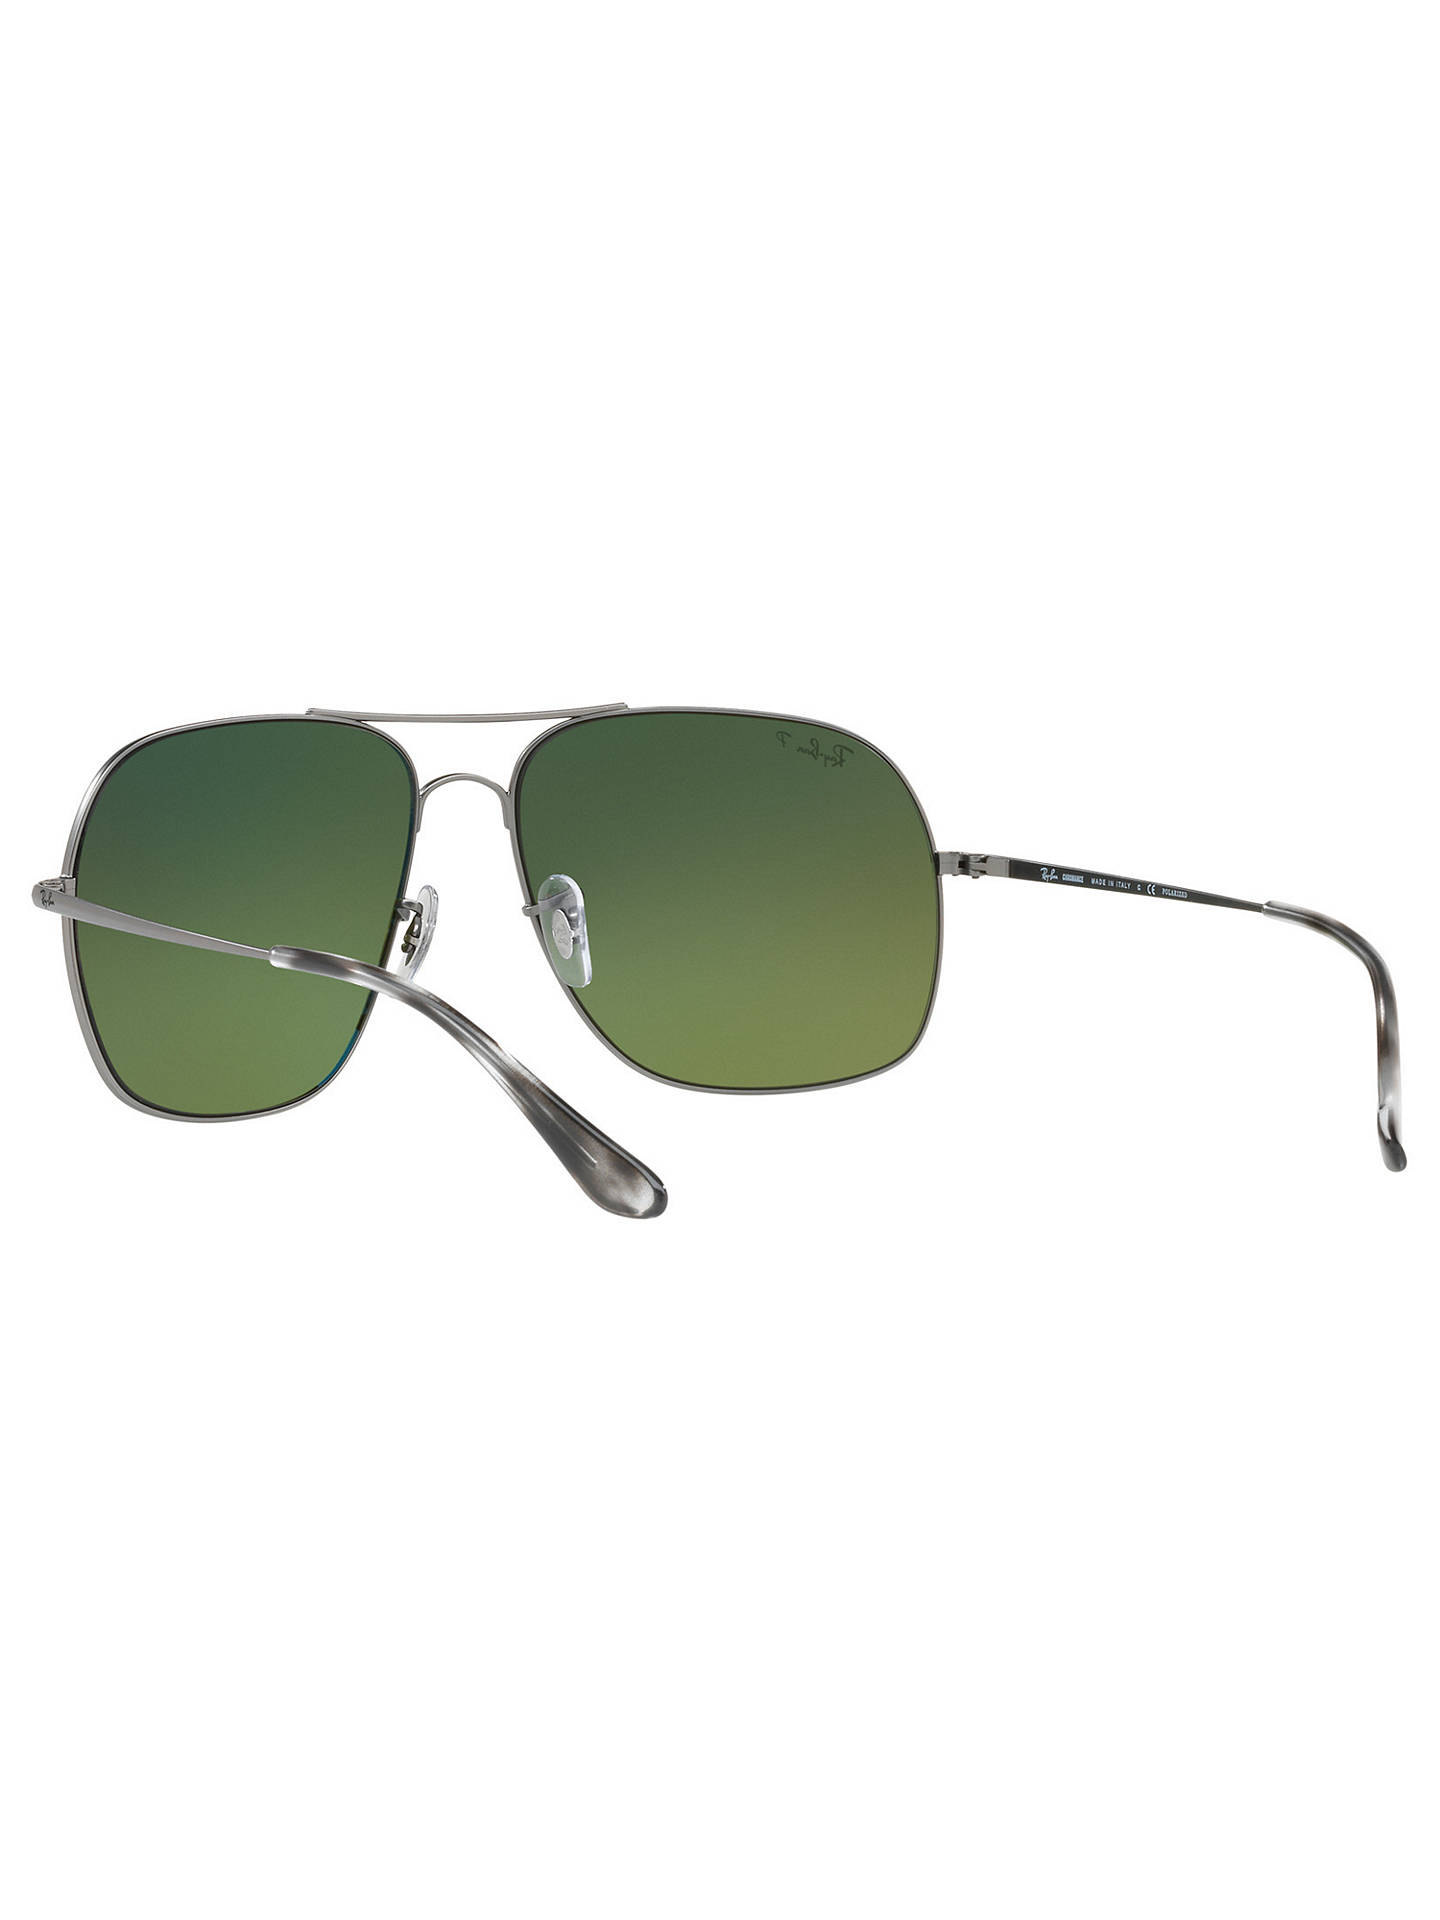 BuyRay-Ban RB3587CH Men's Chromance Polarised Square Sunglasses, Silver/Mirror Green Online at johnlewis.com